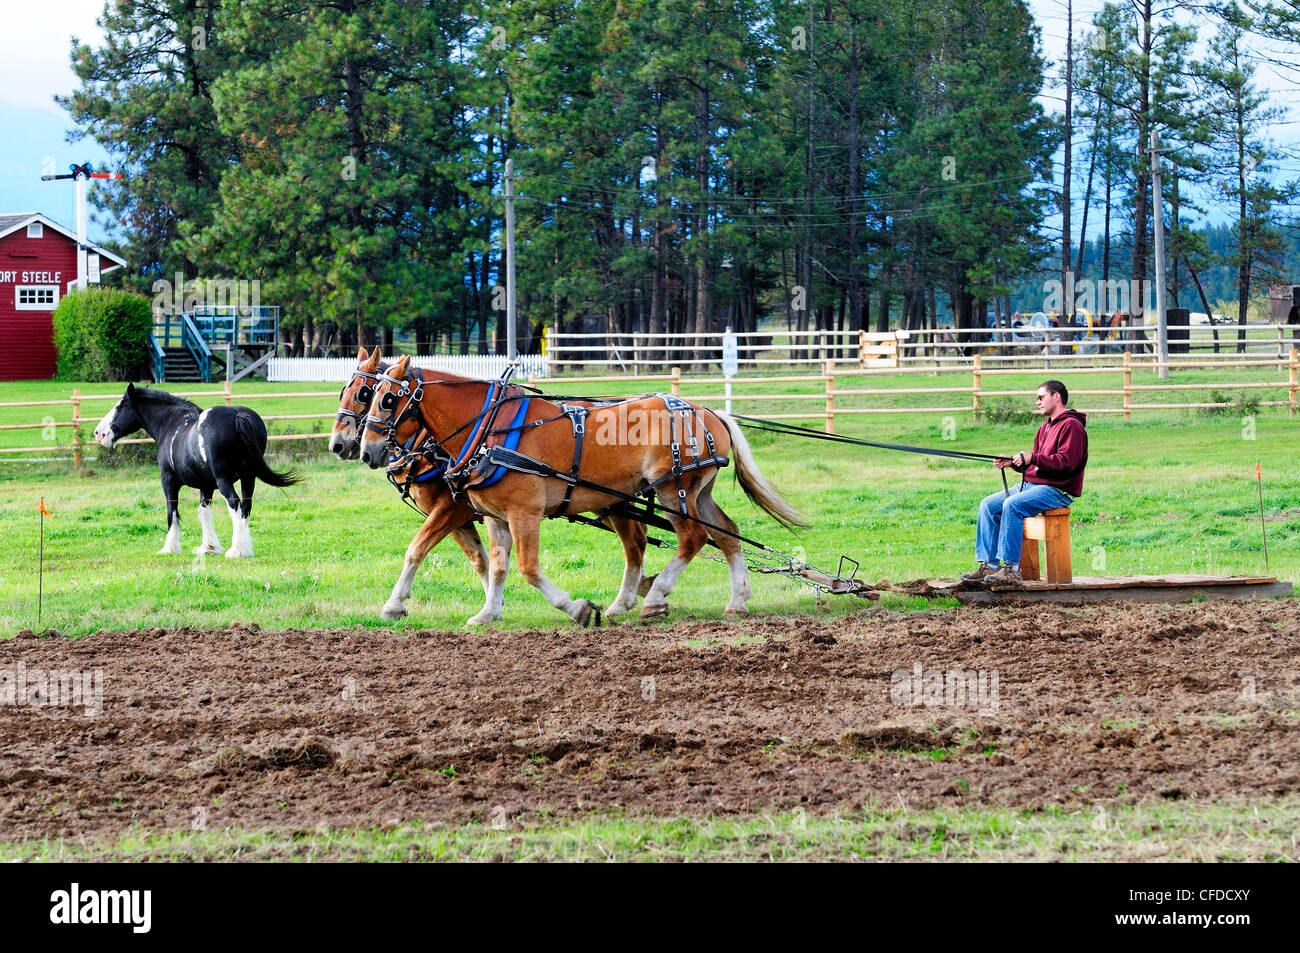 Man controls a team of Belgian horses as they plow a field at Fort Steele near Cranbrook, British Columbia, Canada - Stock Image